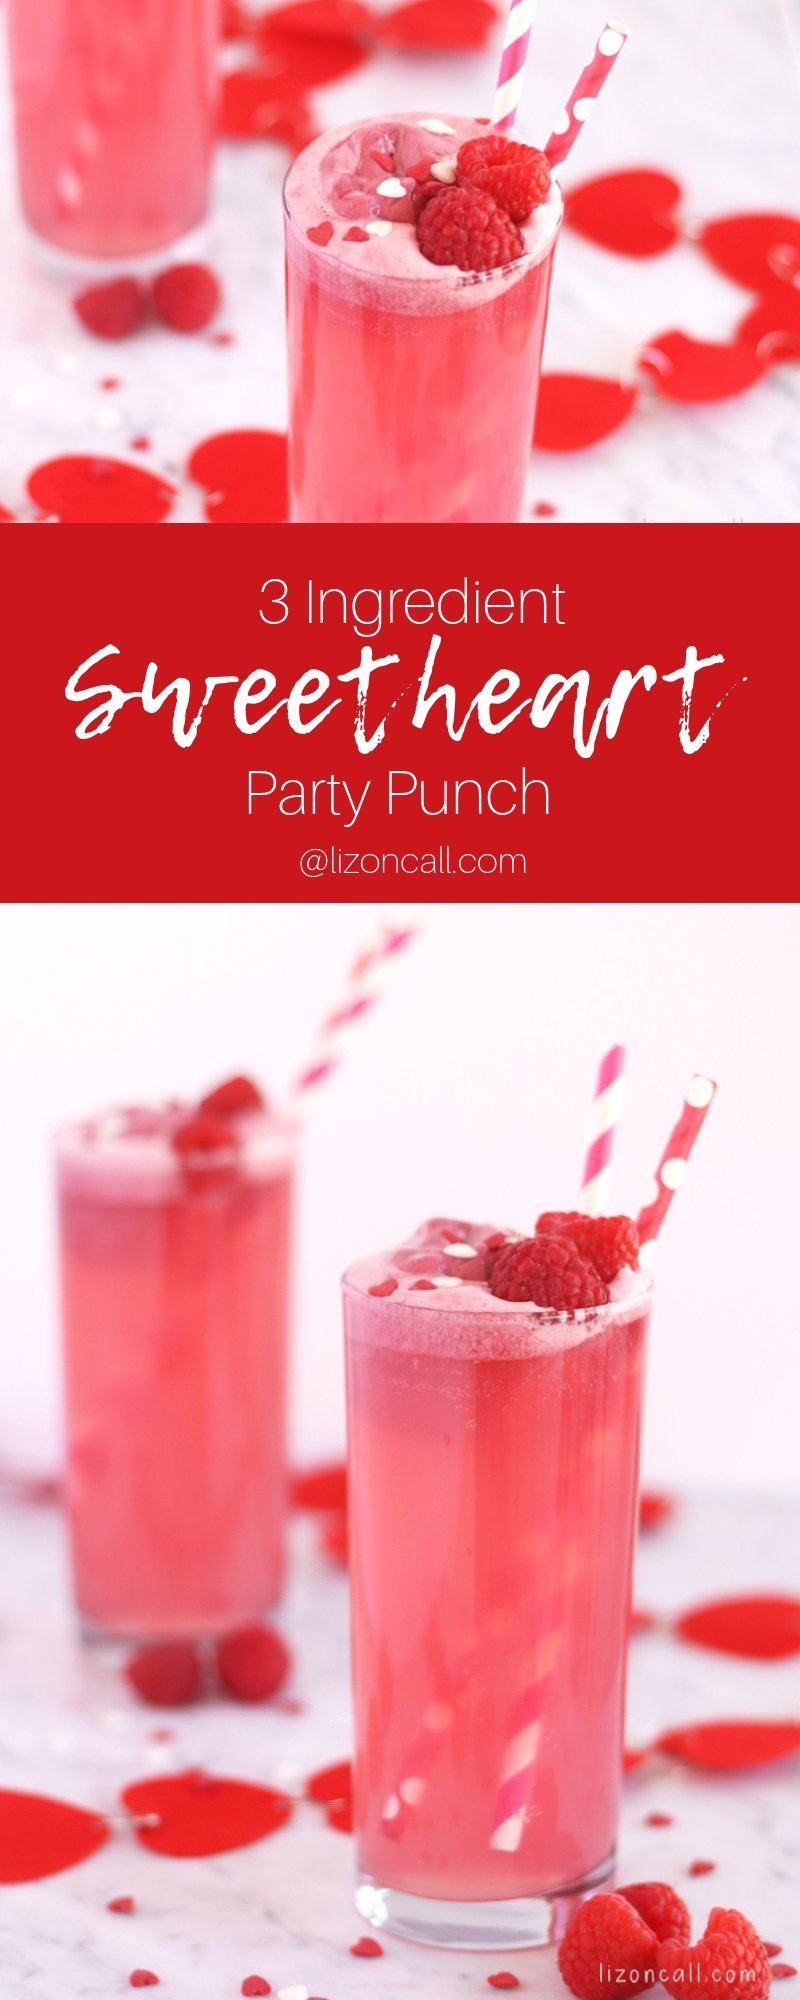 titled image showing glasses of rasberry pink party punch garnished with rasberries and sprinkles